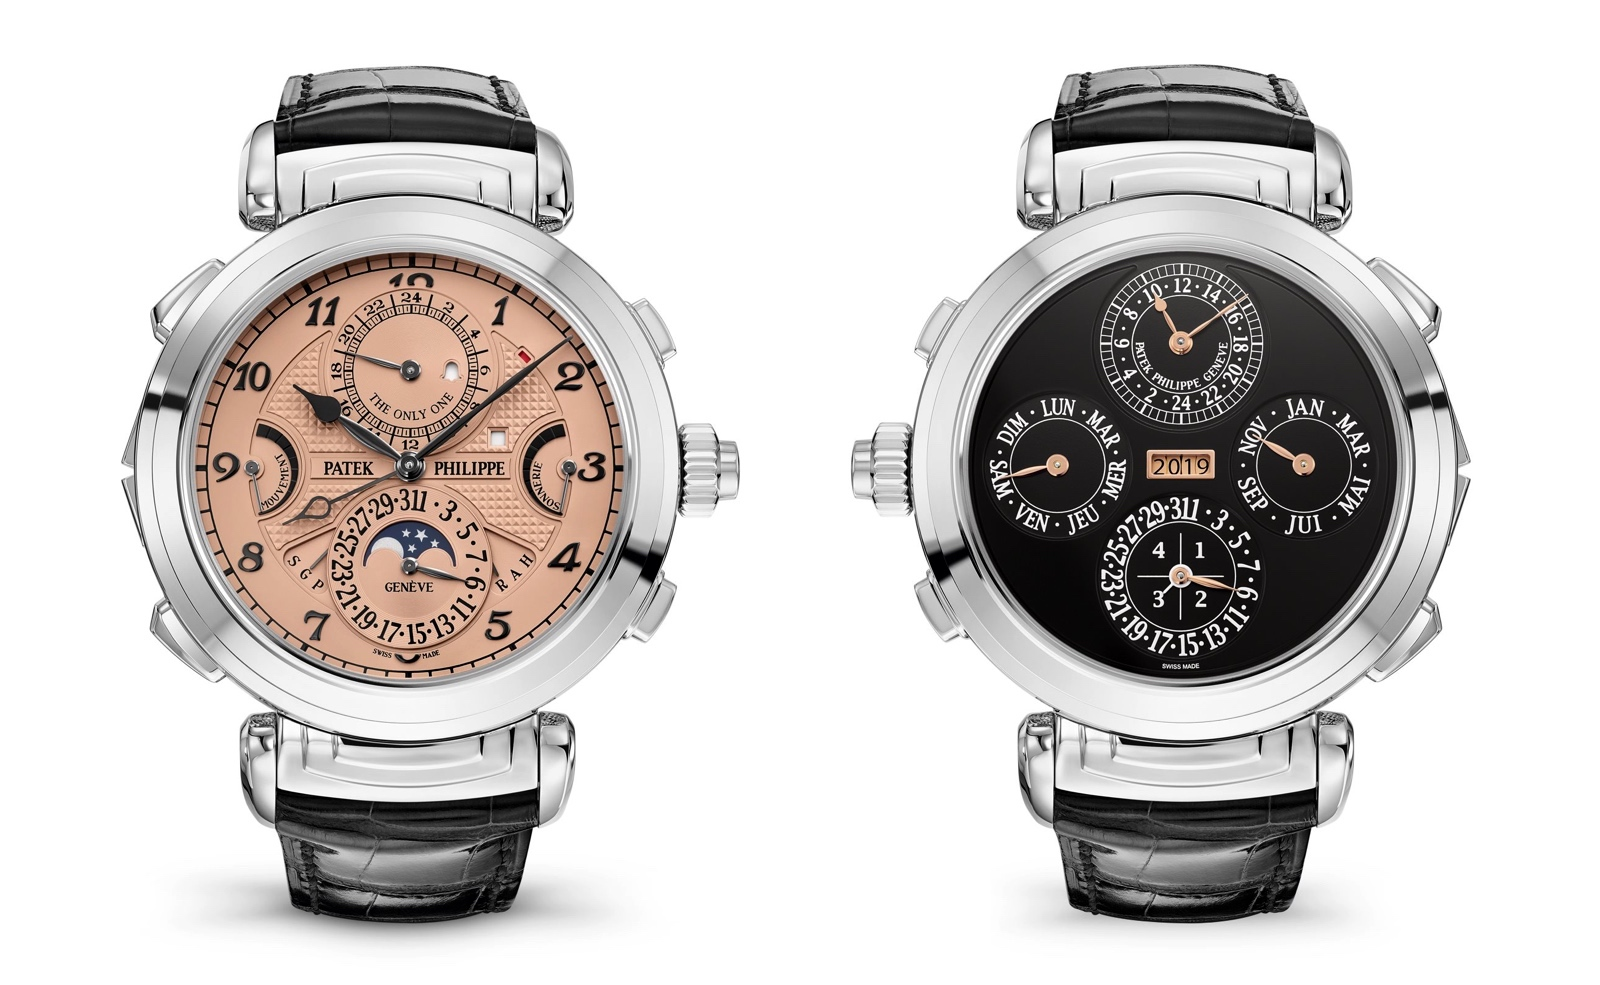 Patek Philippe Grandmaster Chime 6300A Only Watch 2019 - anverso-reverso